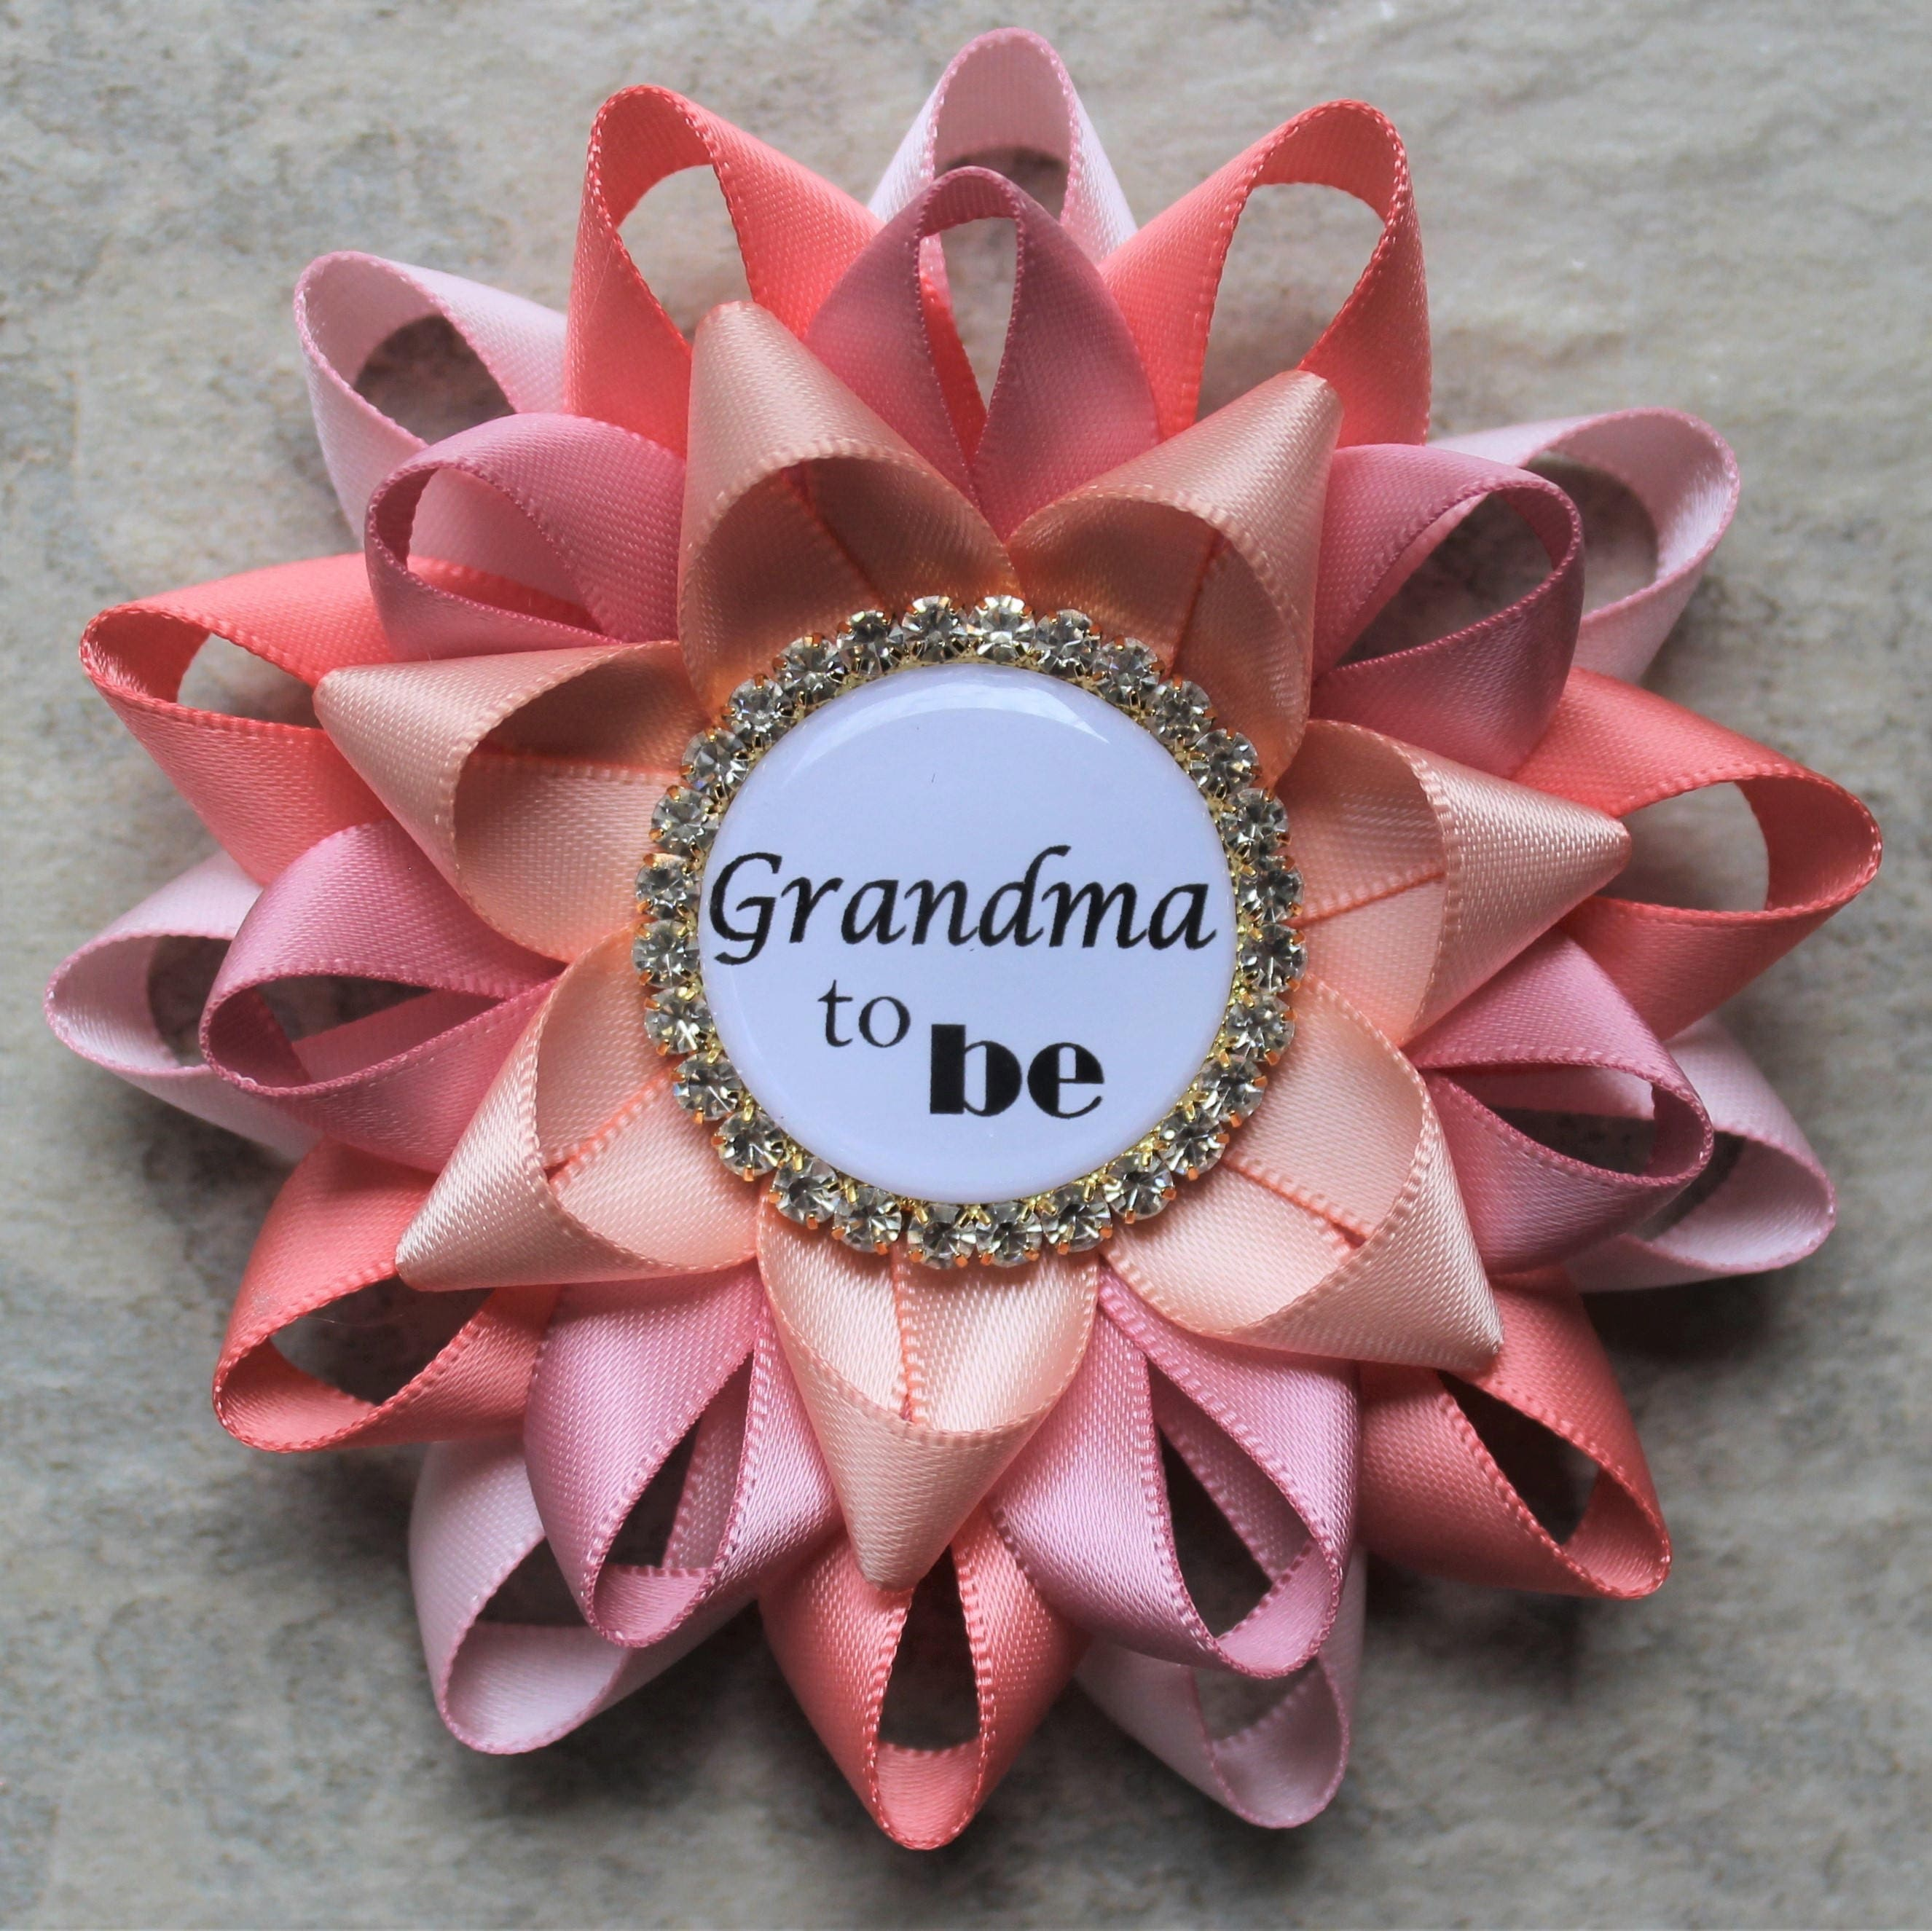 Grandma to be pin personalized baby shower corsage new grandma grandma to be pin personalized baby shower corsage new grandma gift aunt to be gift mommy to be pale pink coral quartz peachy pink negle Image collections